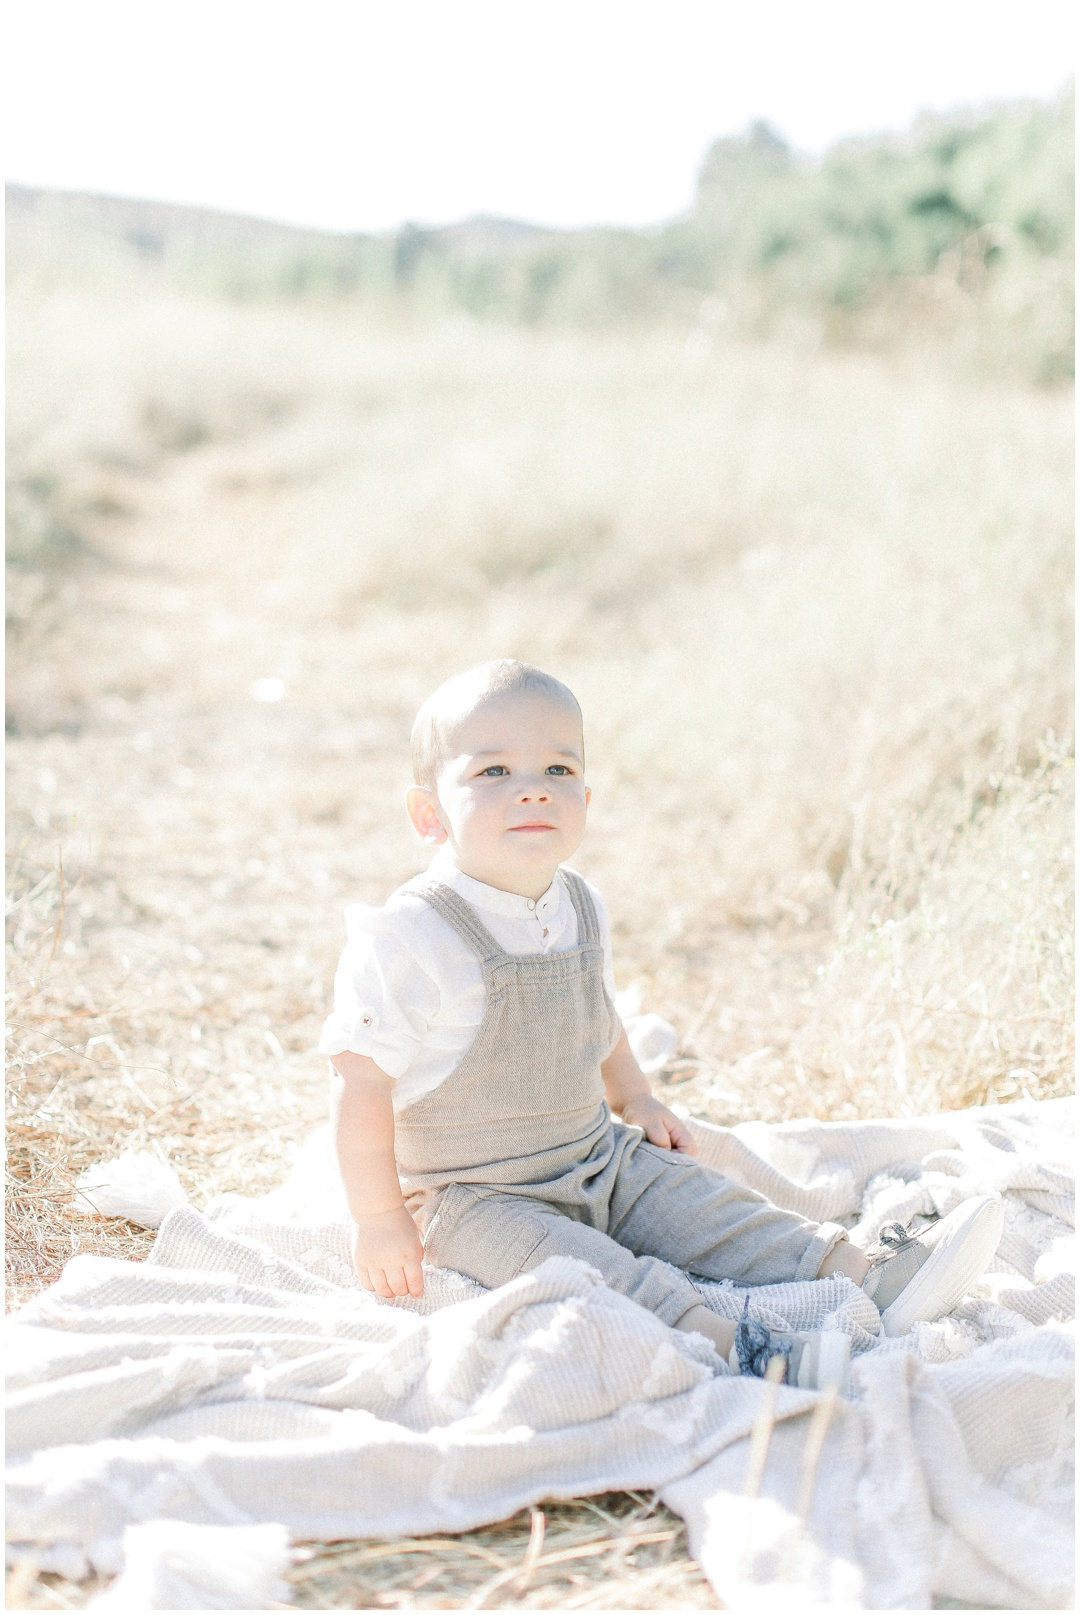 Newport_Beach_Family_Session_Orange_County_Family_Photographer_Thomas_Riley_Wilderness_Park_Carrie_Stotts_Sean_Stotts__4327.jpg